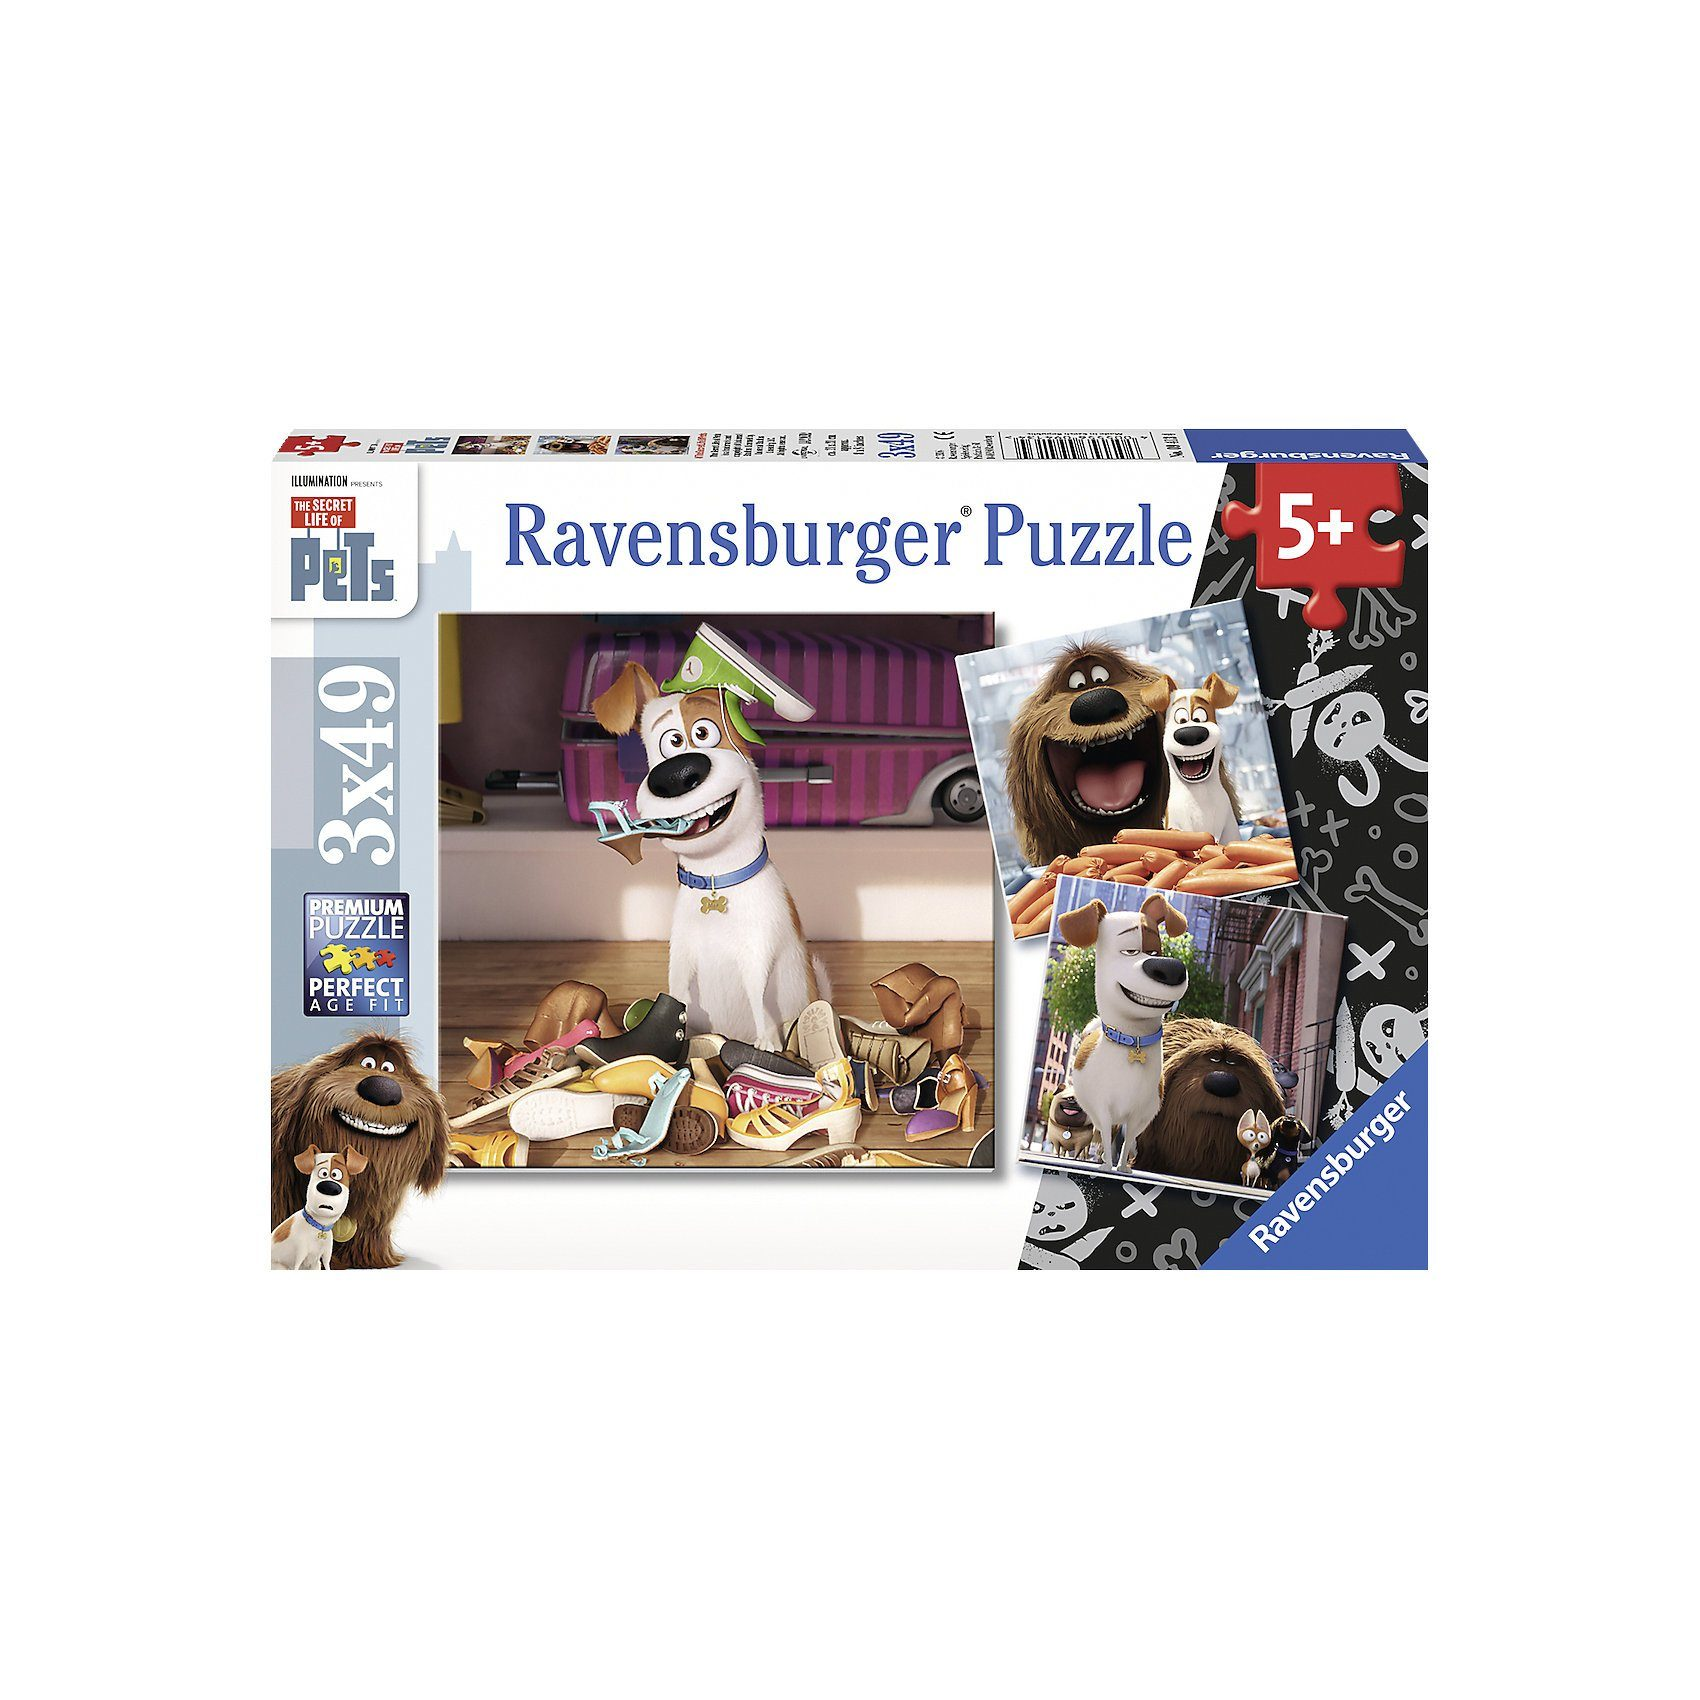 Ravensburger Puzzleset 3 x 49 Teile Secret Life of Pets